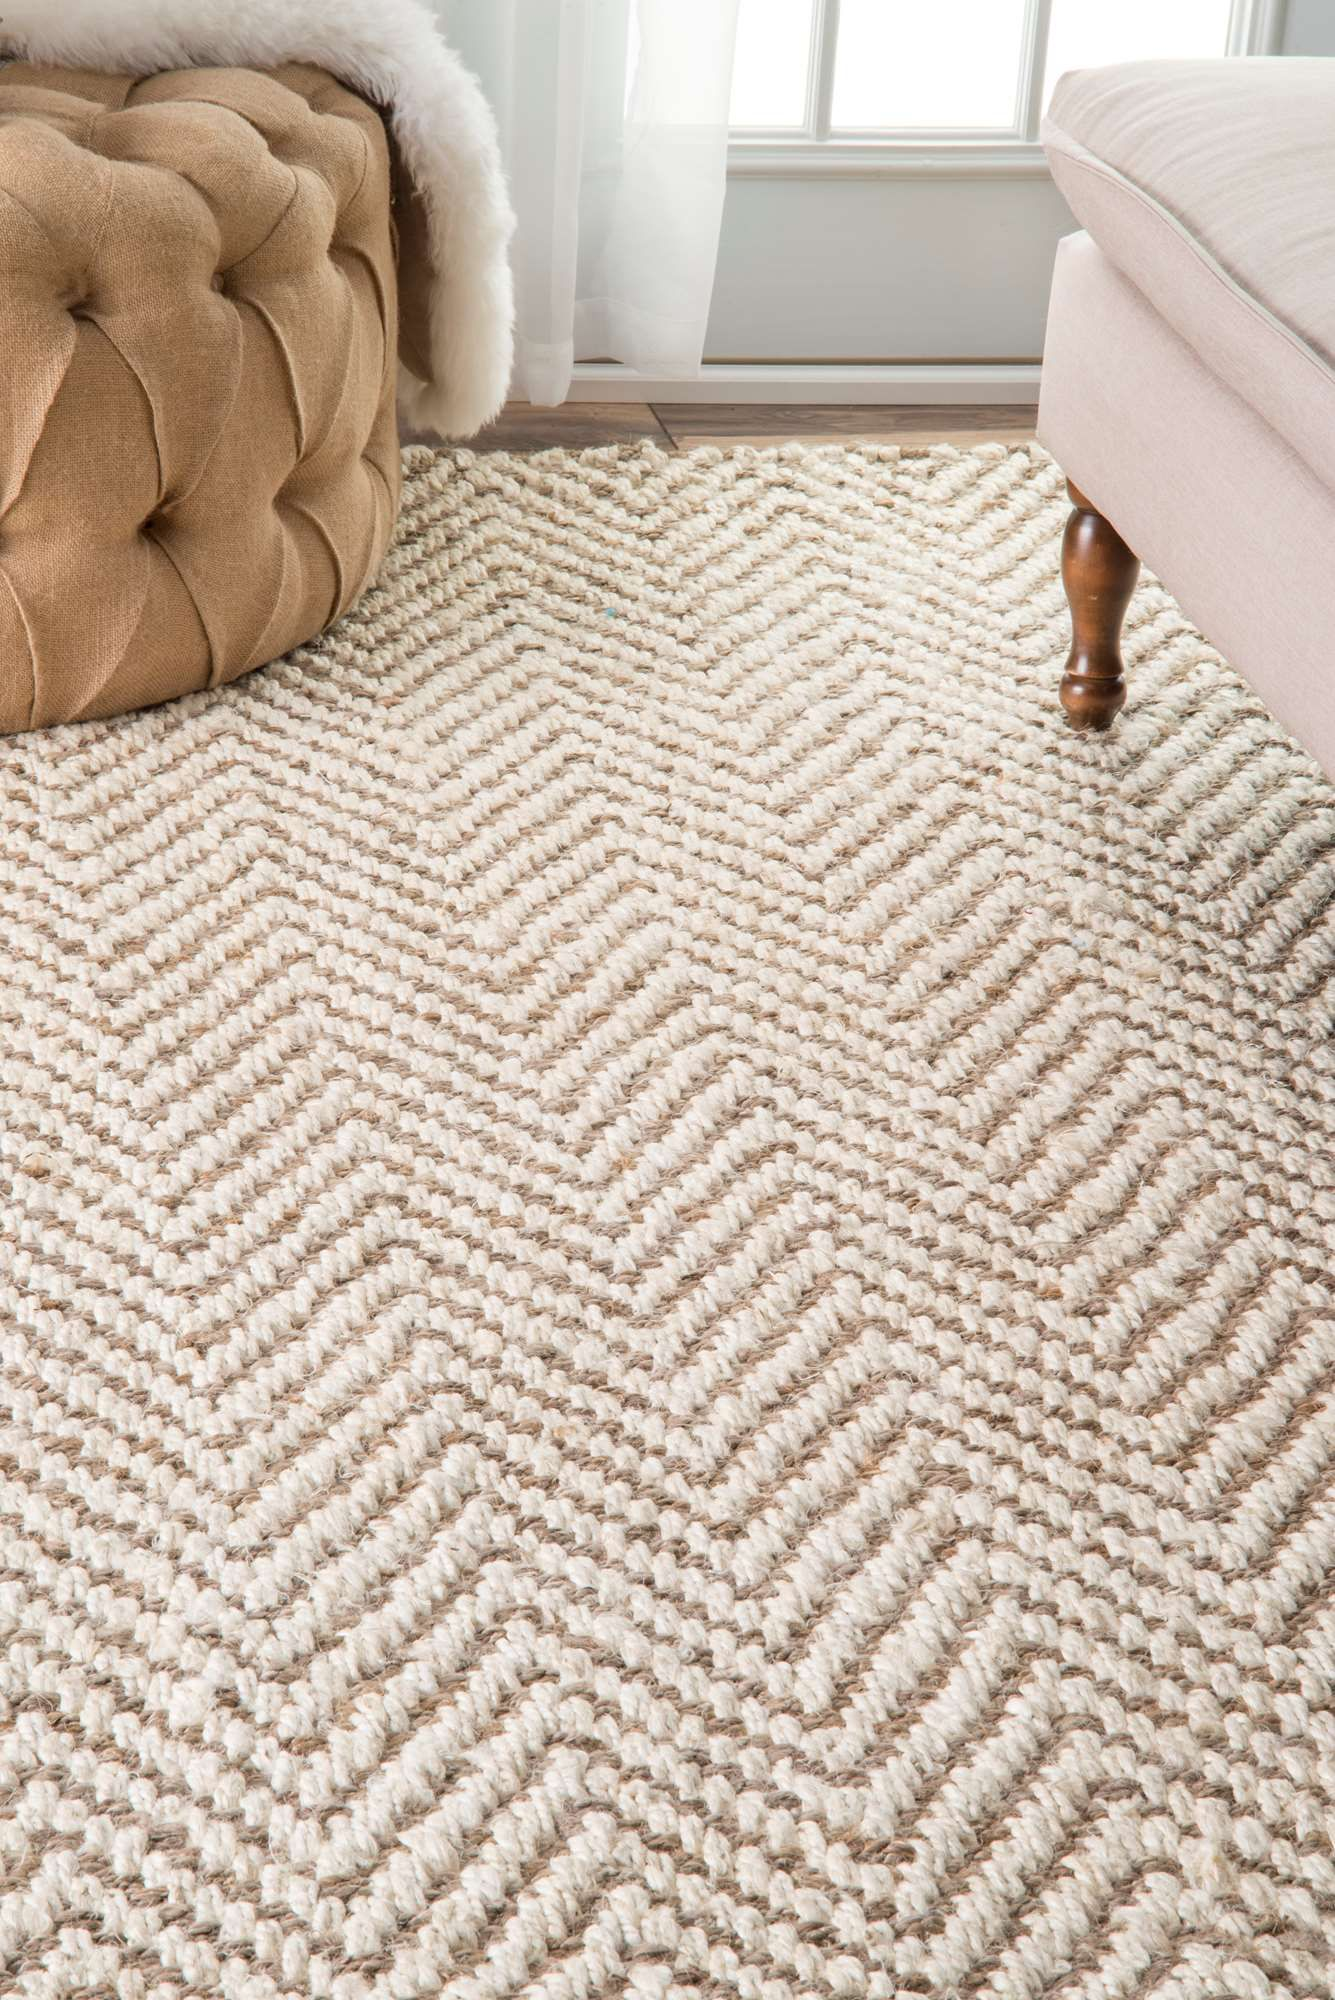 Kiwawa03 Handwoven Jute Jagged Chevron Rug Next House